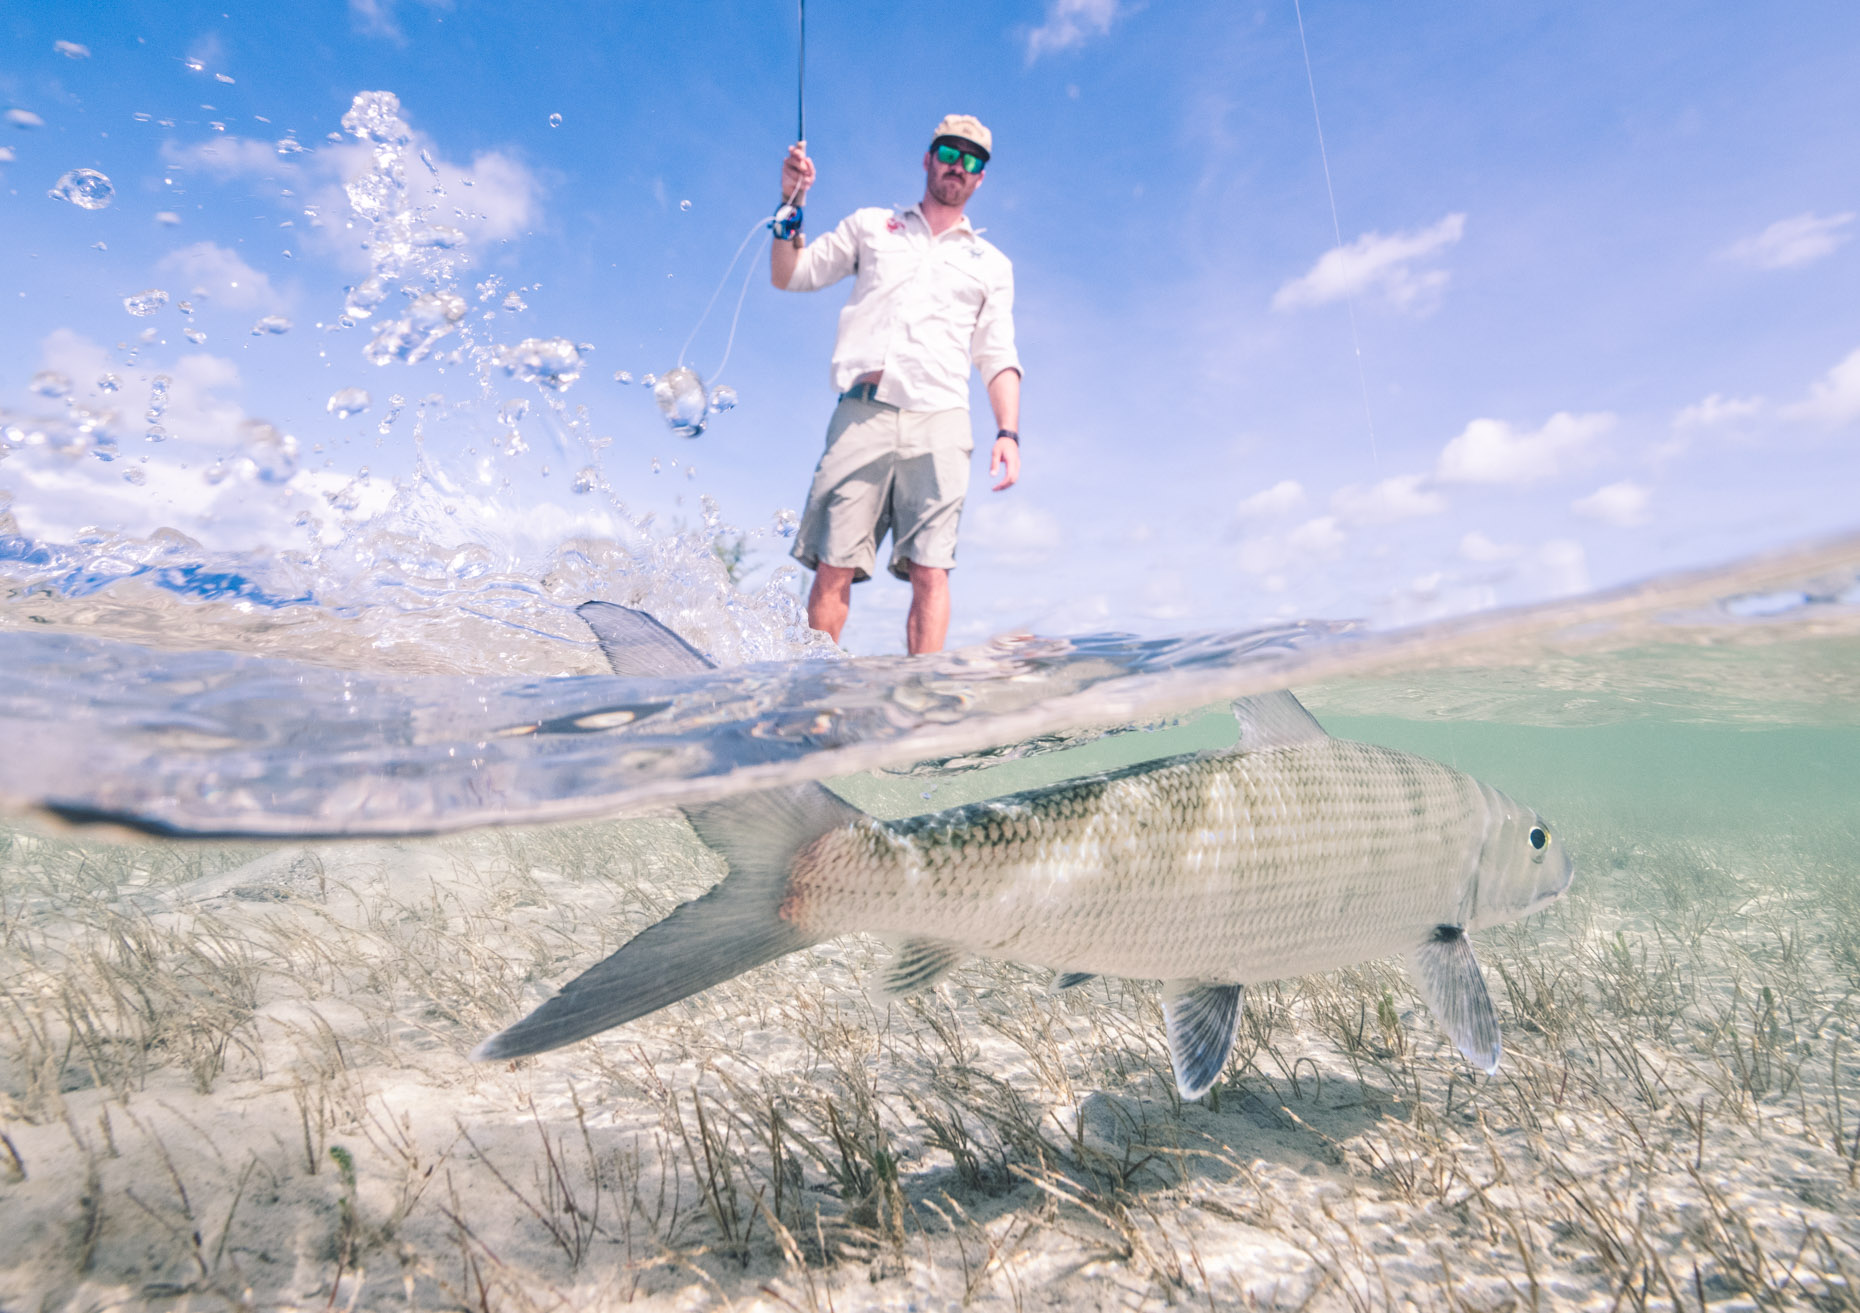 Will_Graham_Abaco_Lodge_Flyfishing-8